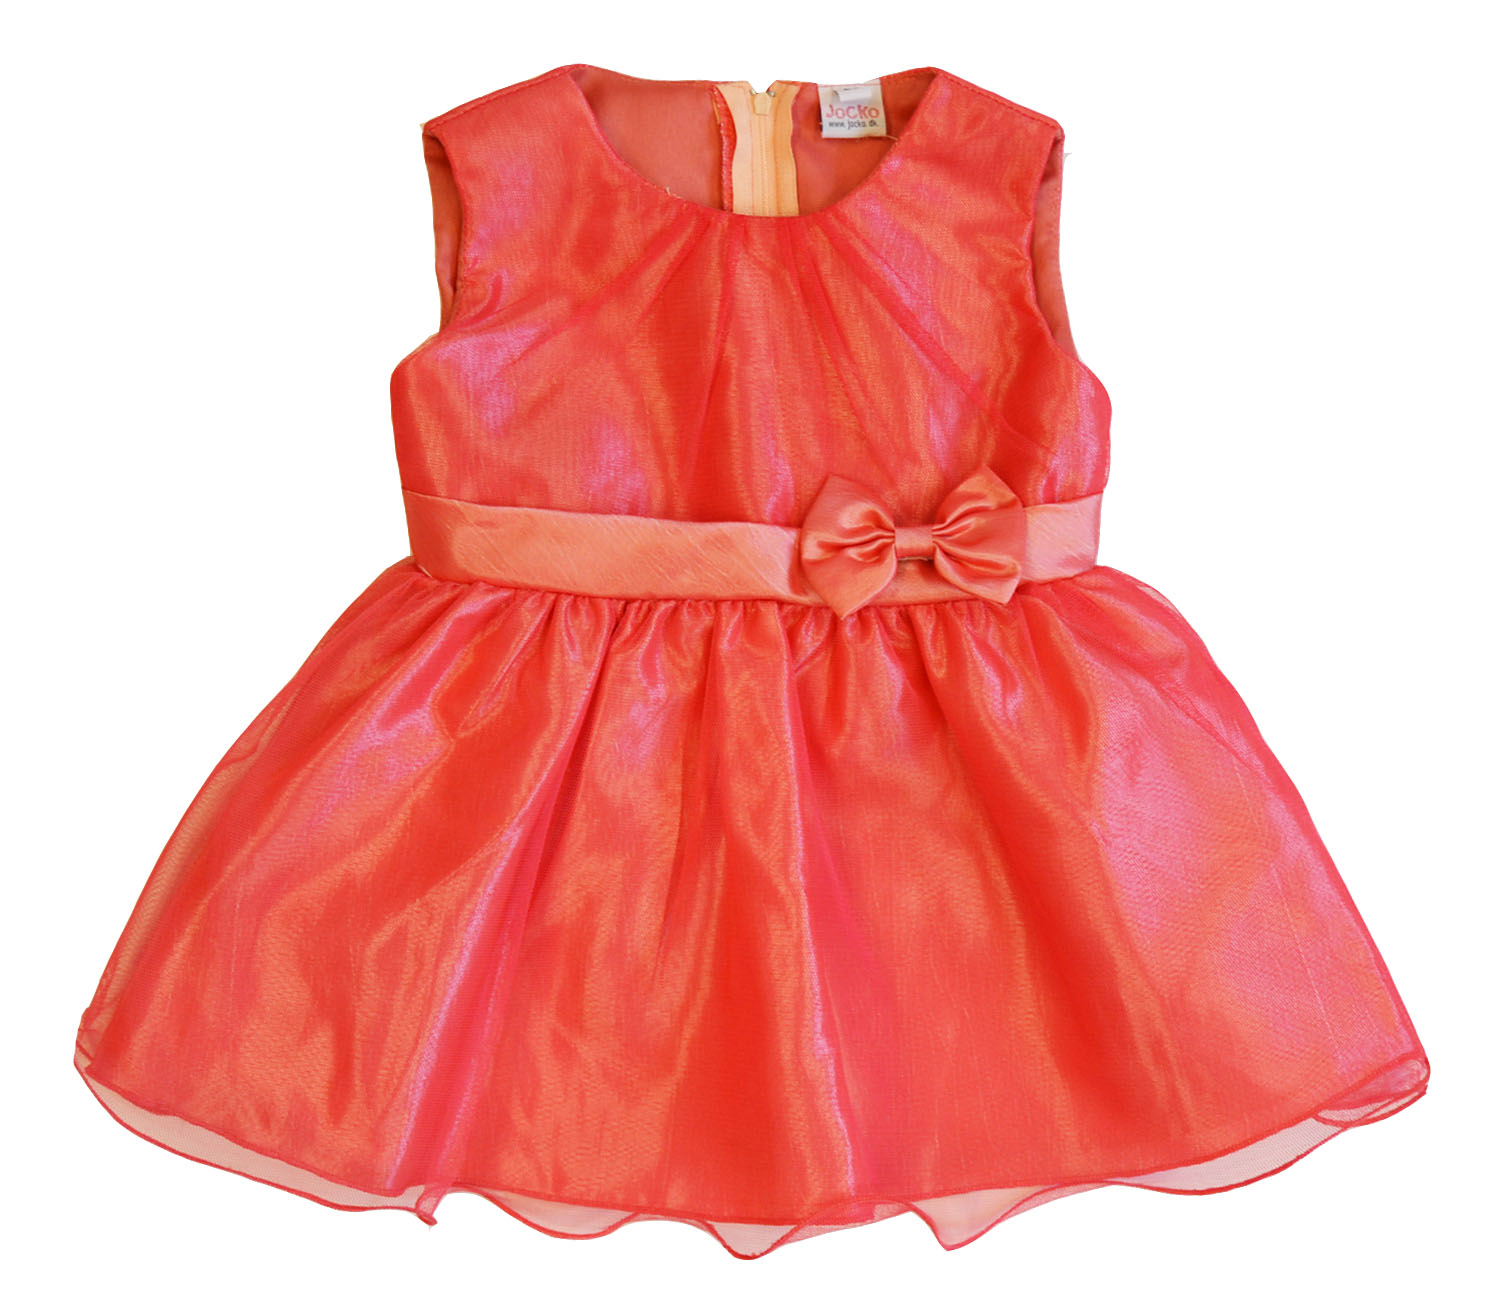 10802 babydress